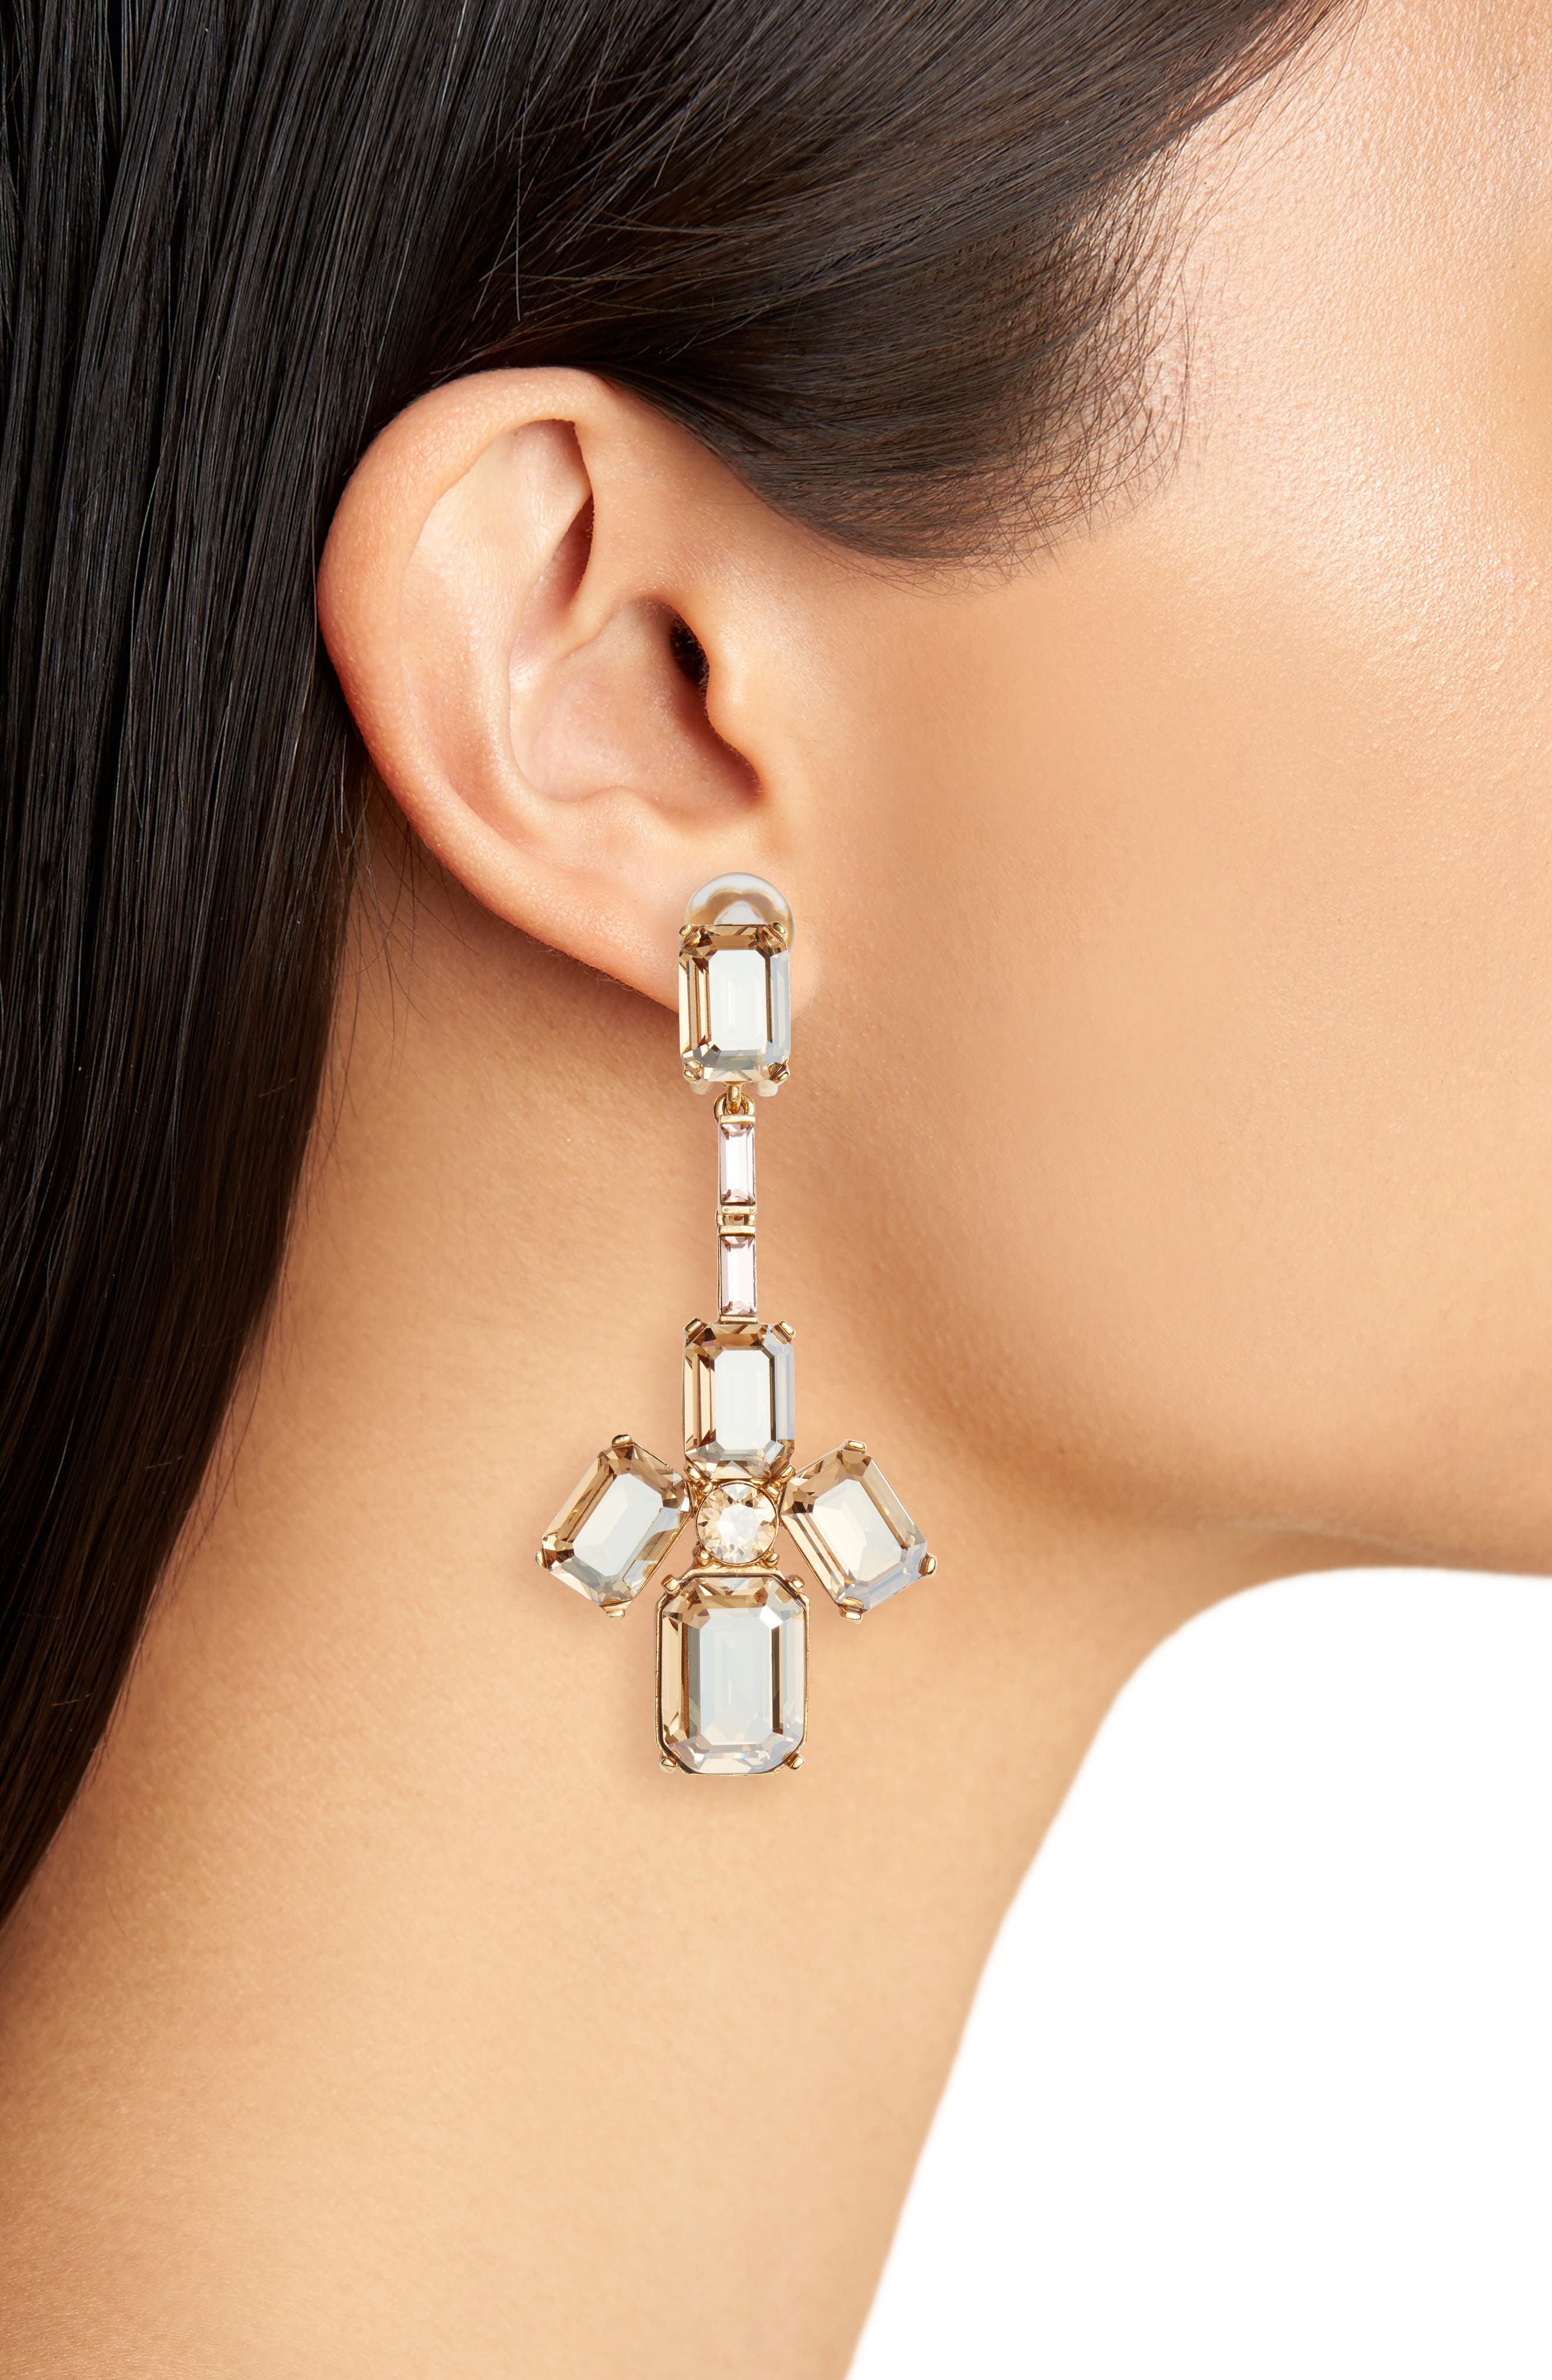 Tendril Crystal Clip Earrings,                             Alternate thumbnail 2, color,                             Cry Gold Shadow